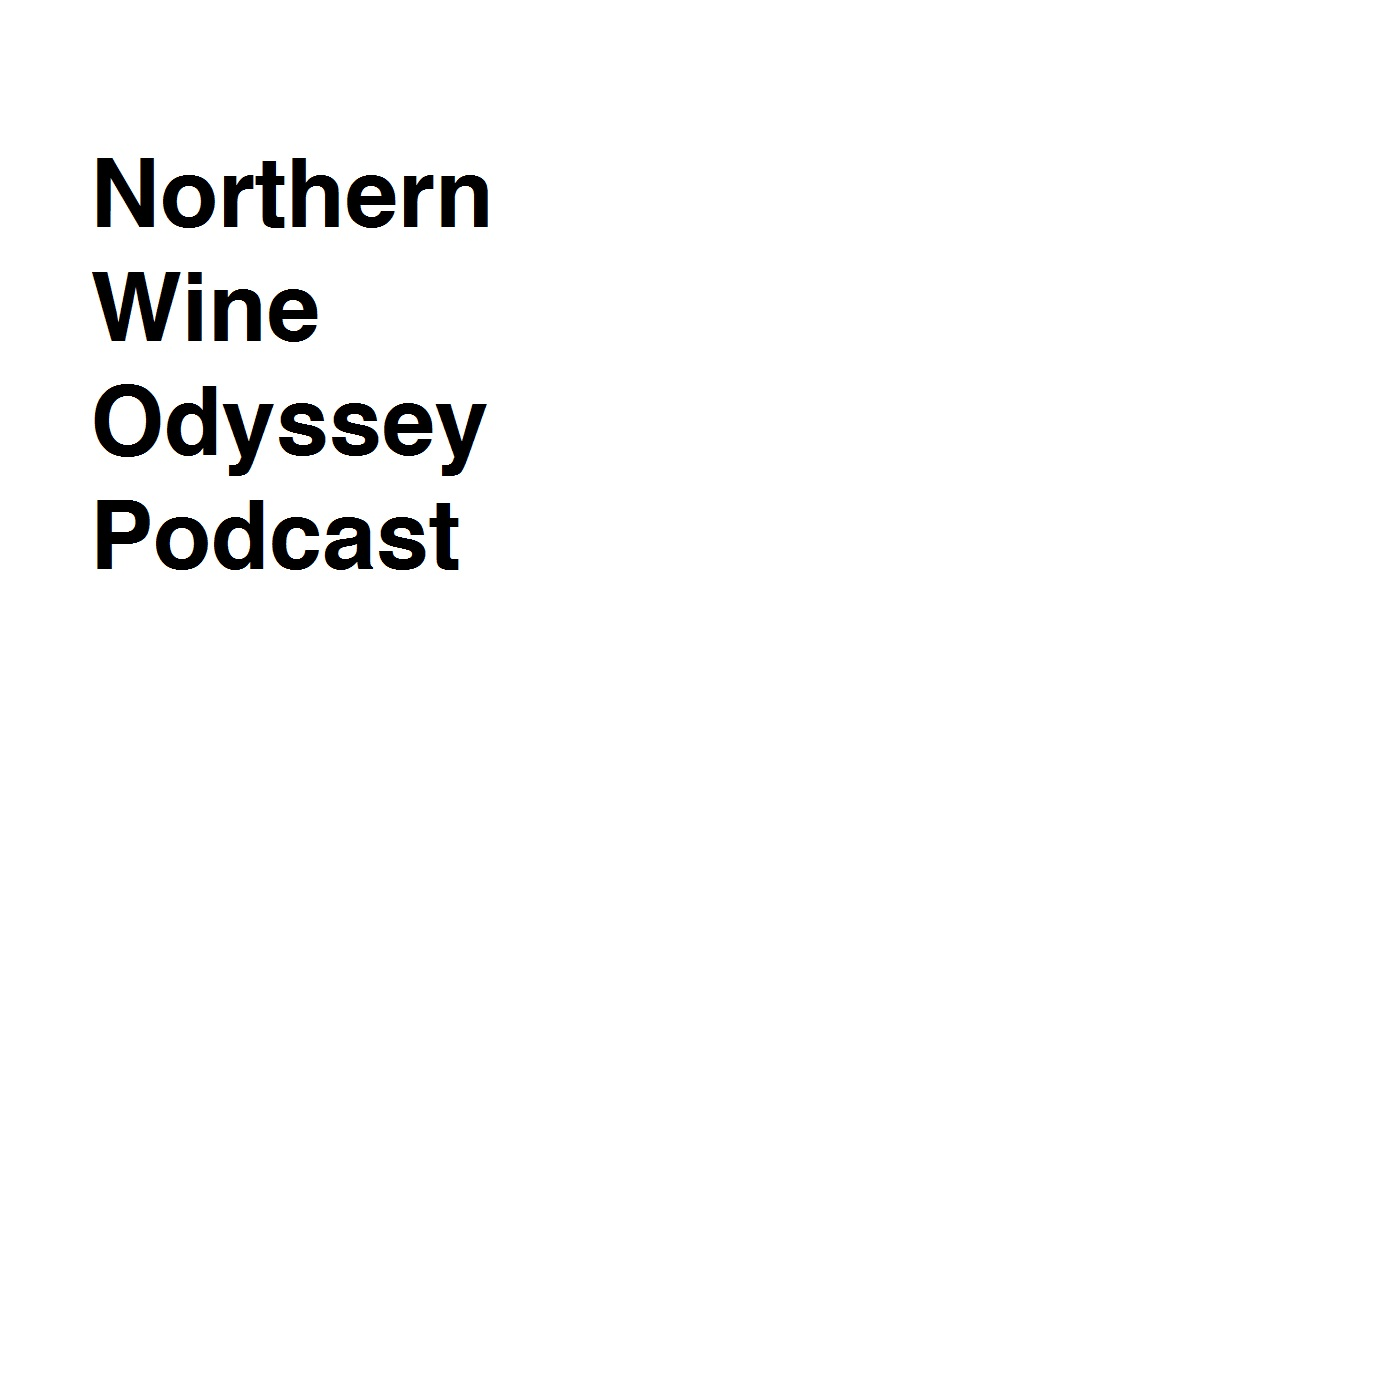 podcast - A Northern Wine Odyssey